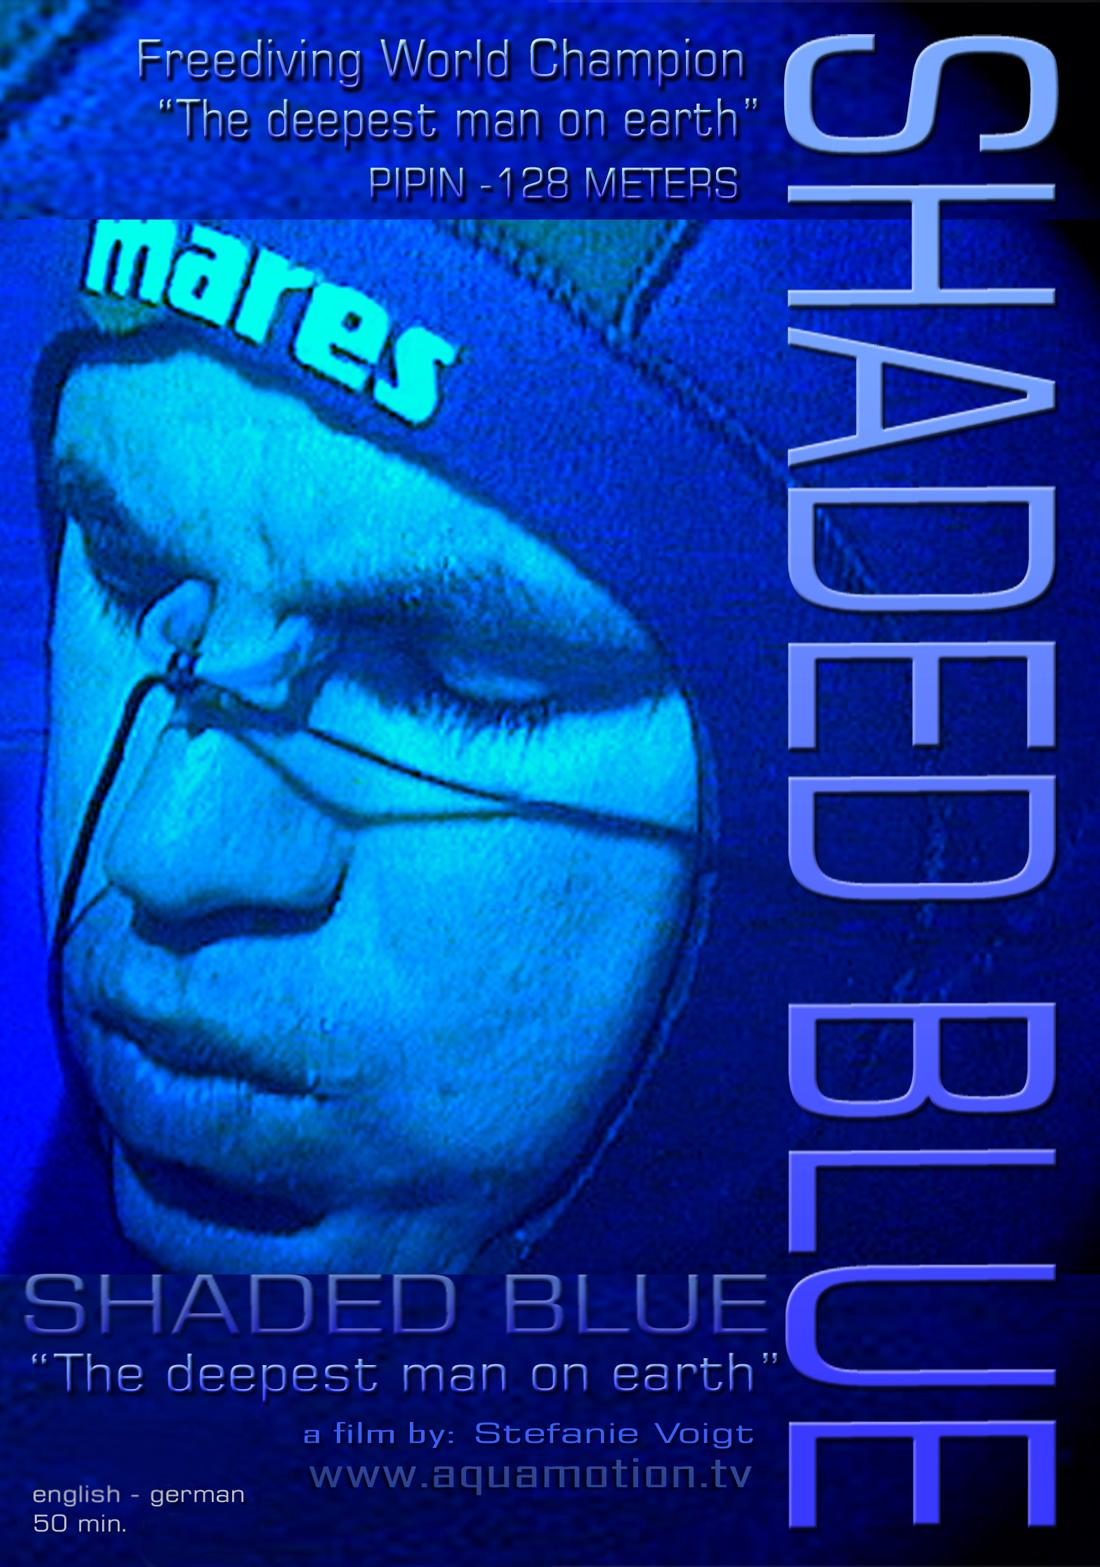 SHADED BLUE - Pipin, the deepest man on earth - a film by aquamotion -  CLICK PICTURE TO VIEW VIDEO